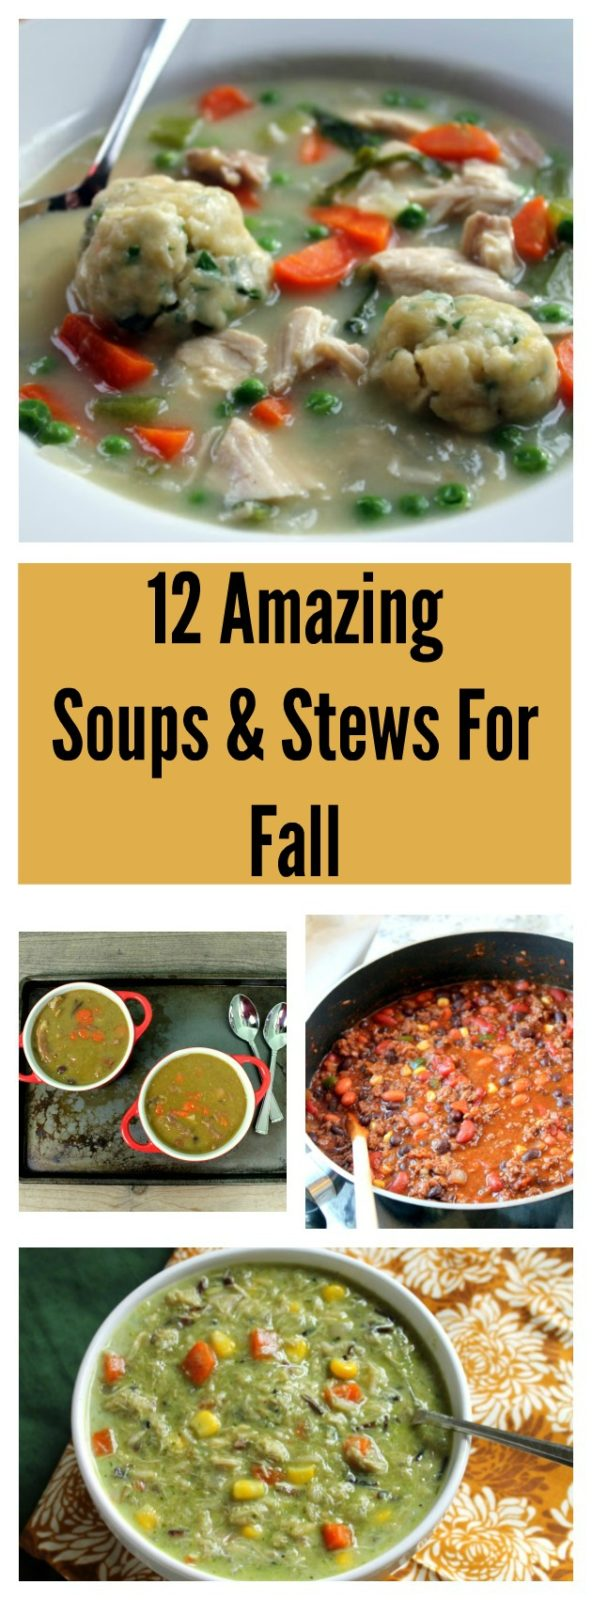 12 Amazing Soups & Stews For Fall